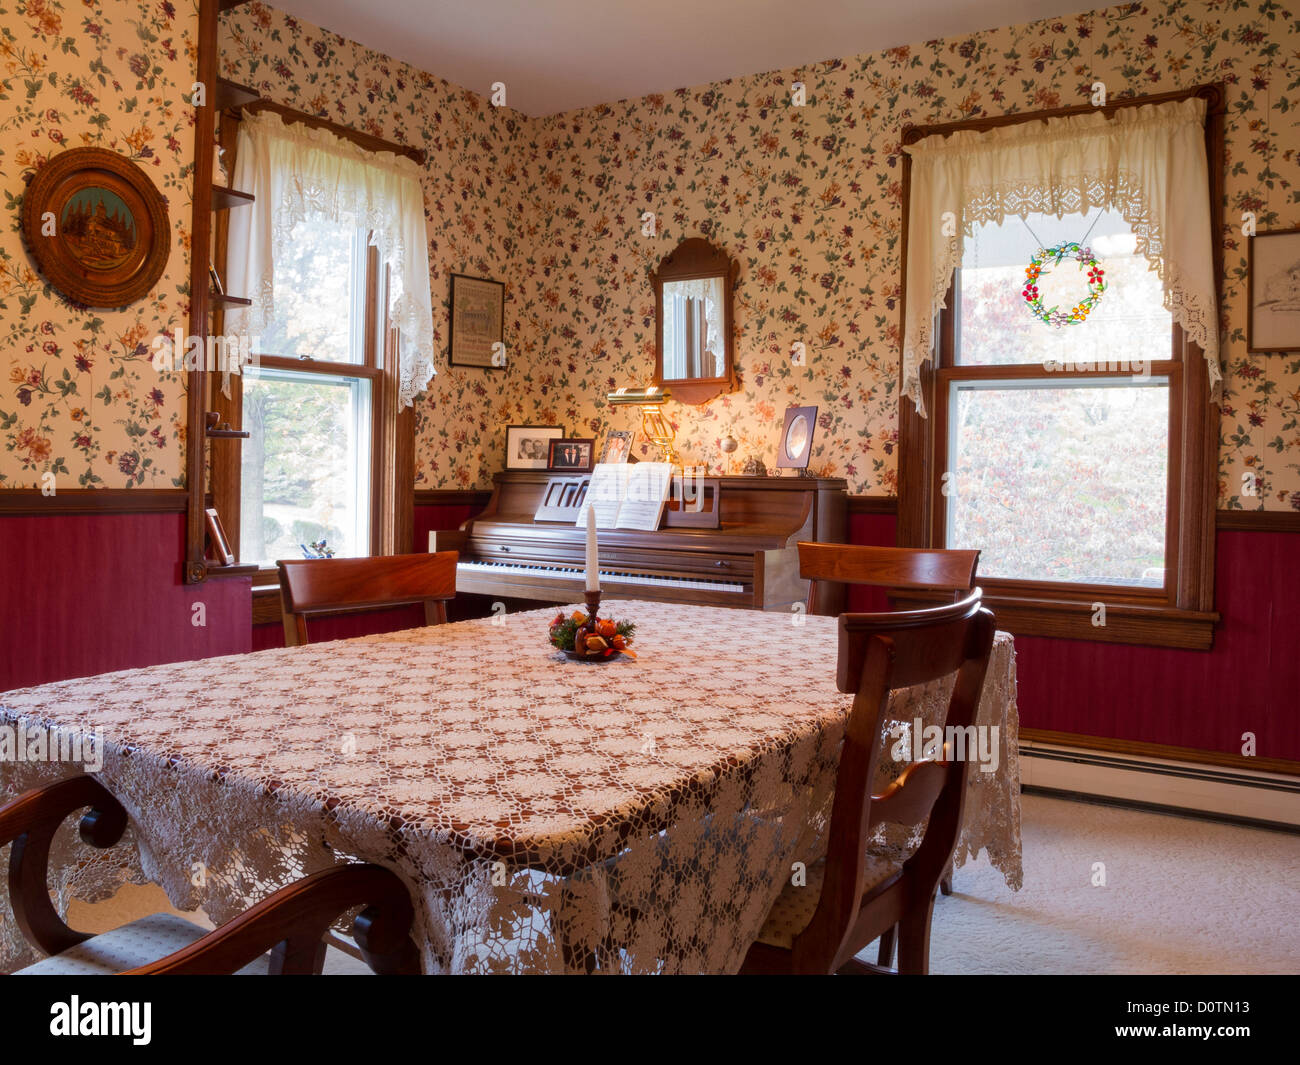 Dining Room Early American Decor PA USA Stock Photo Royalty